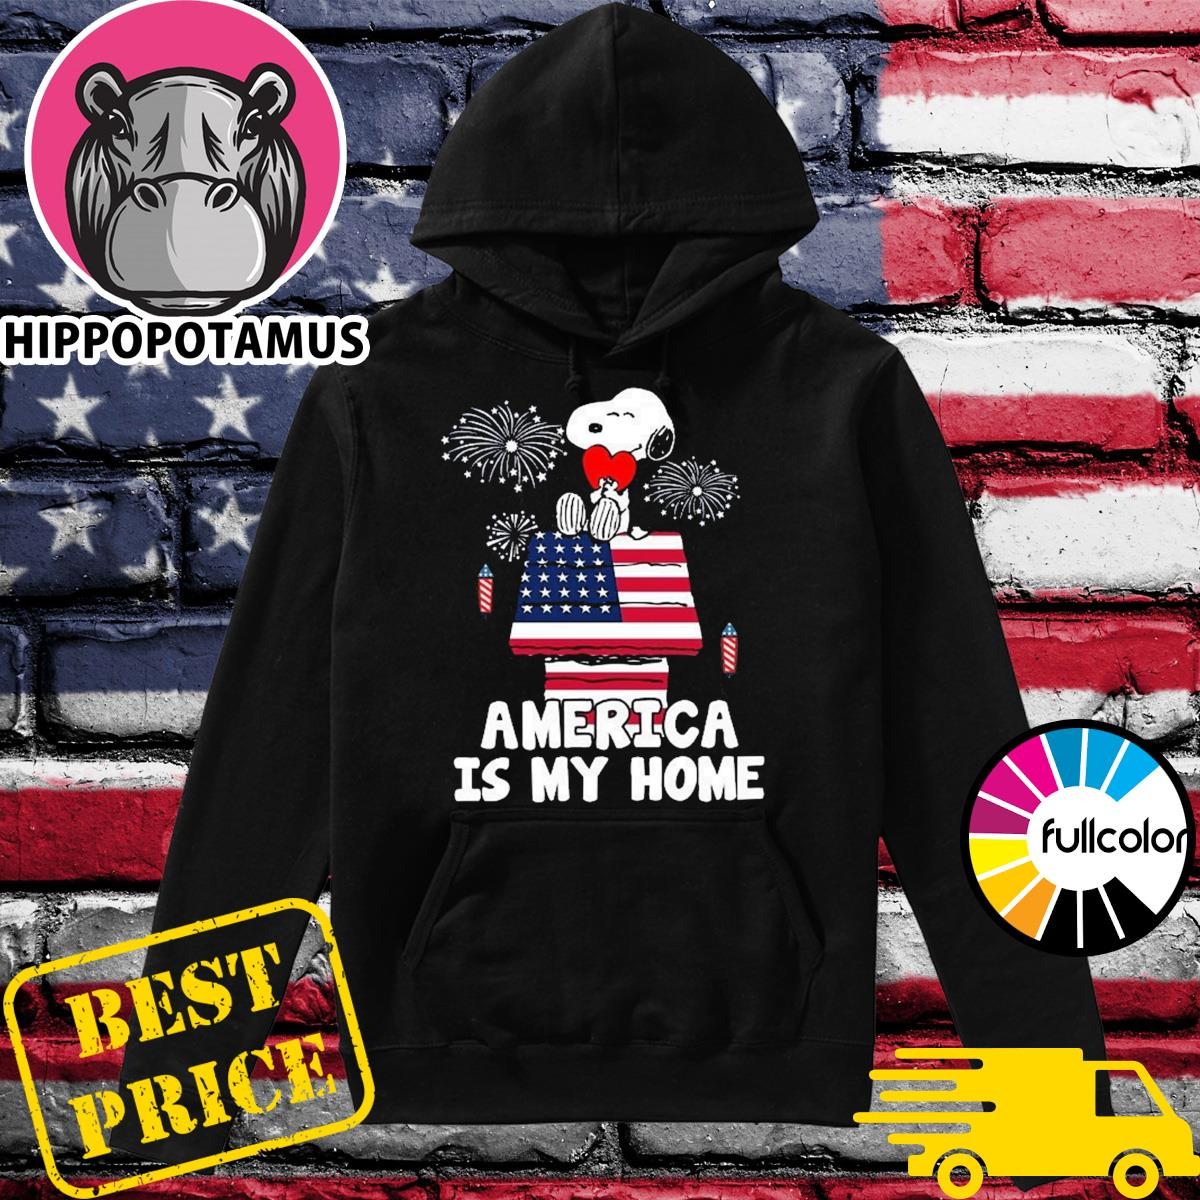 Snoopy Hug Heart Emerica Is My Home Funny 4th Of July, Independence Day Shirt Hoodie